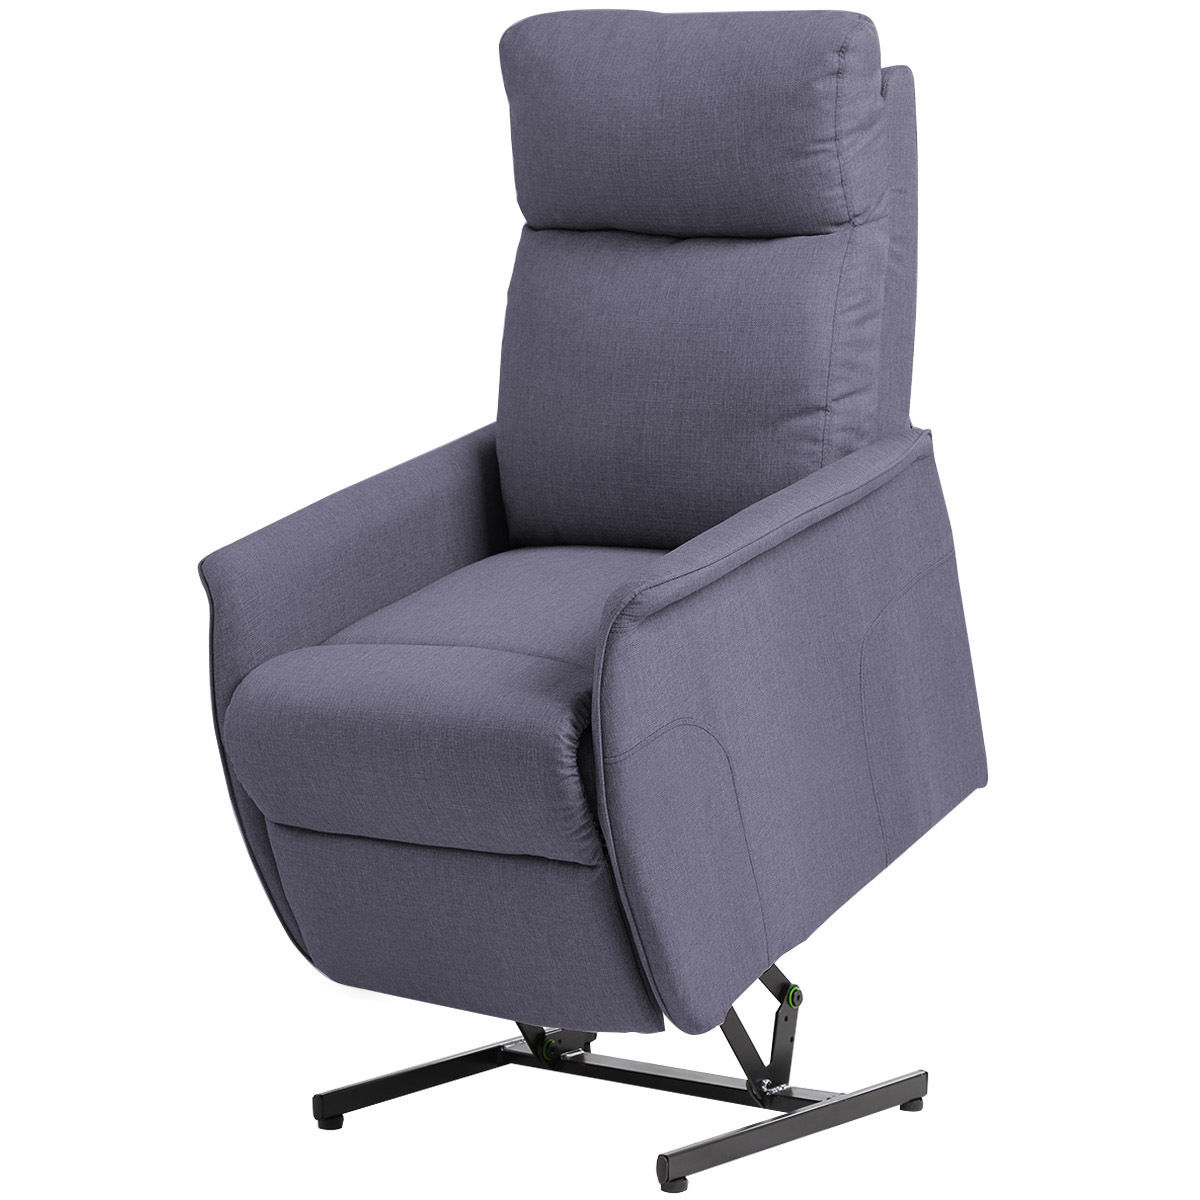 Costway Electric Power Lift Chair Recliner Sofa Fabric Padded Seat Living Room w/Remote  sc 1 st  Walmart & Costway Electric Power Lift Chair Recliner Sofa Fabric Padded Seat ... islam-shia.org